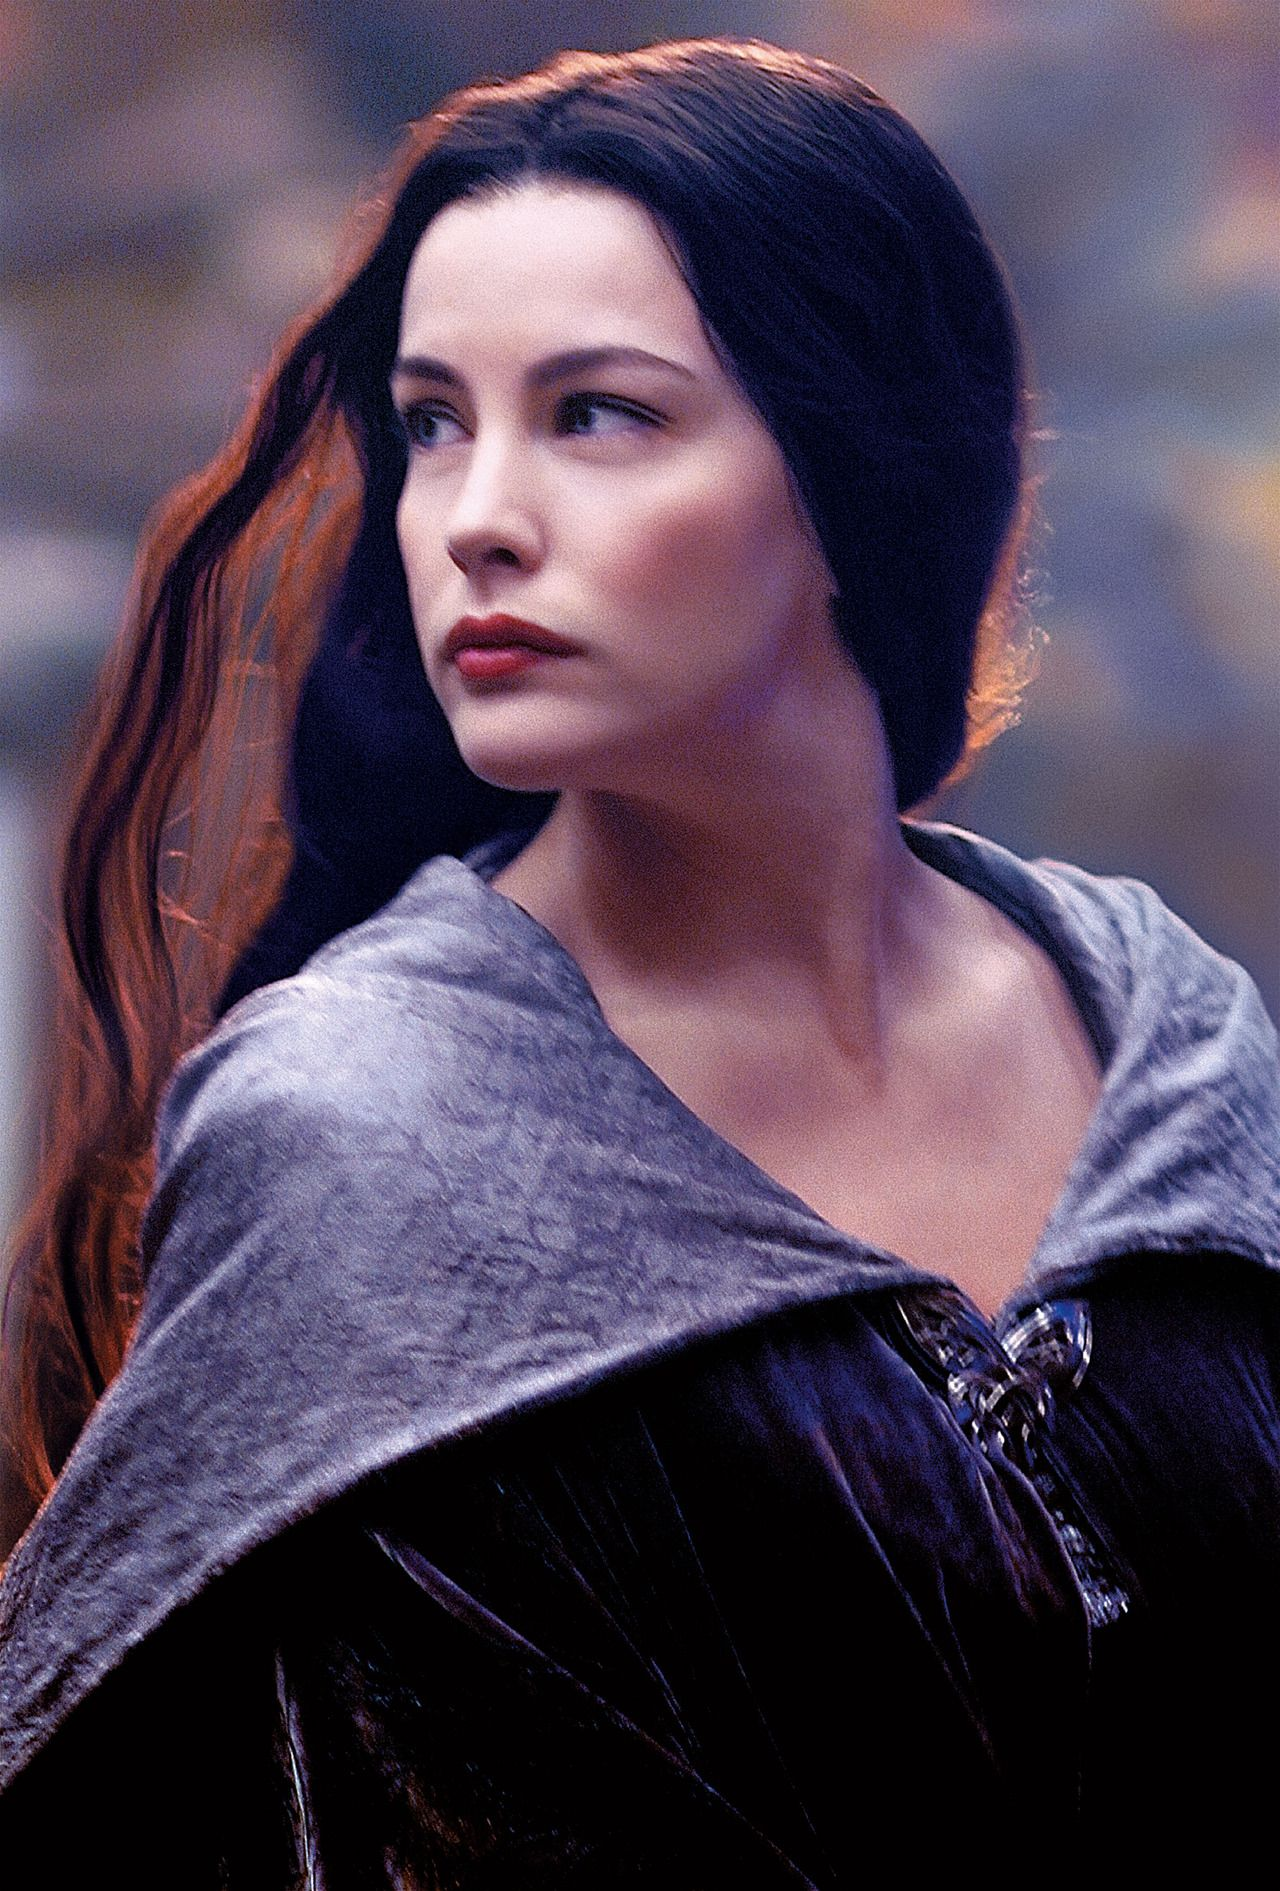 Liv Tyler In The Lord Of The Rings Lord Of The Rings Liv Tyler Lord